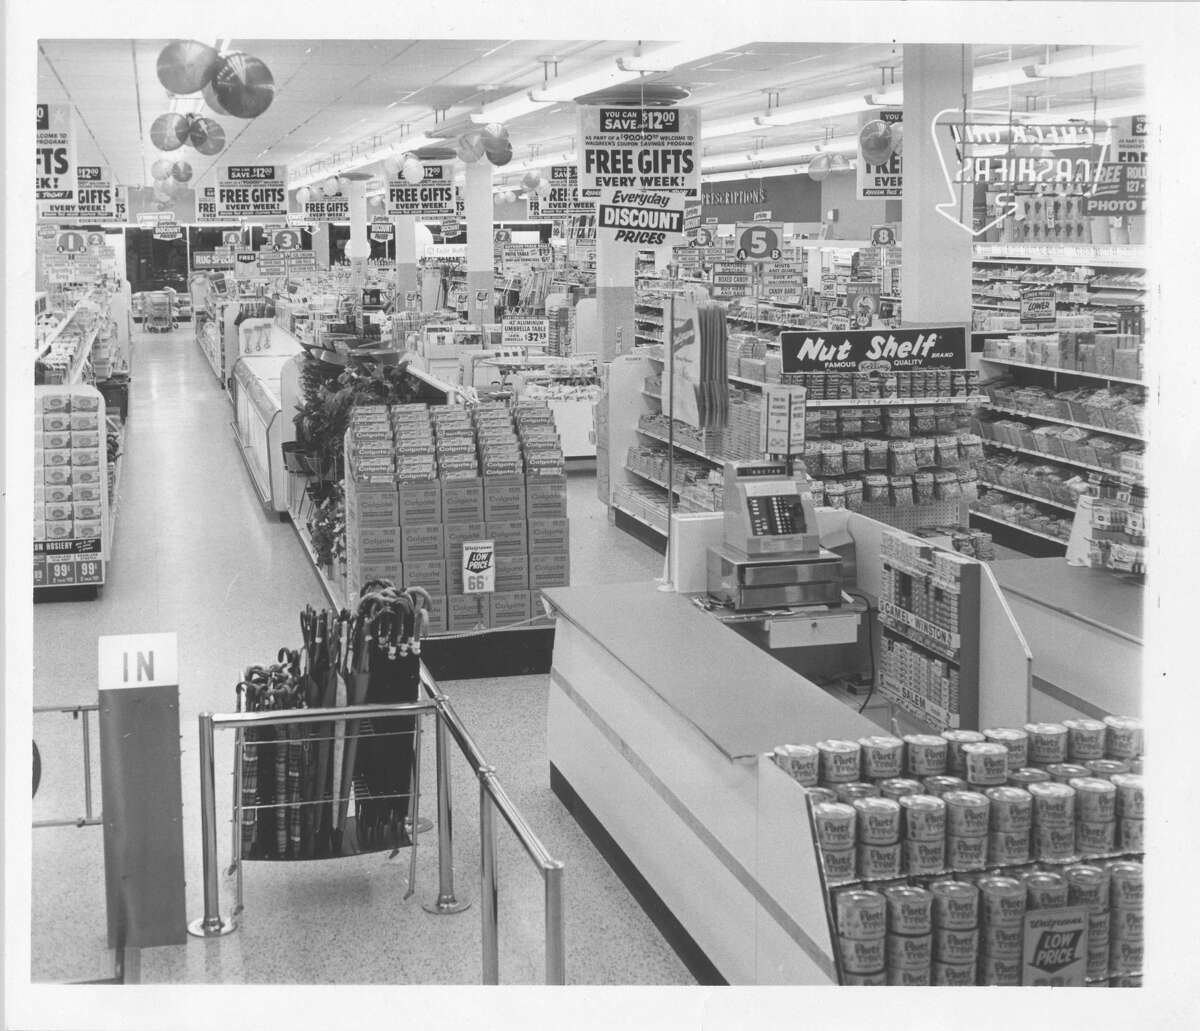 1963 - Walgreens store at Northline Shopping City. >>>Check out these ads from Northline Mall's past in the photos that follow...